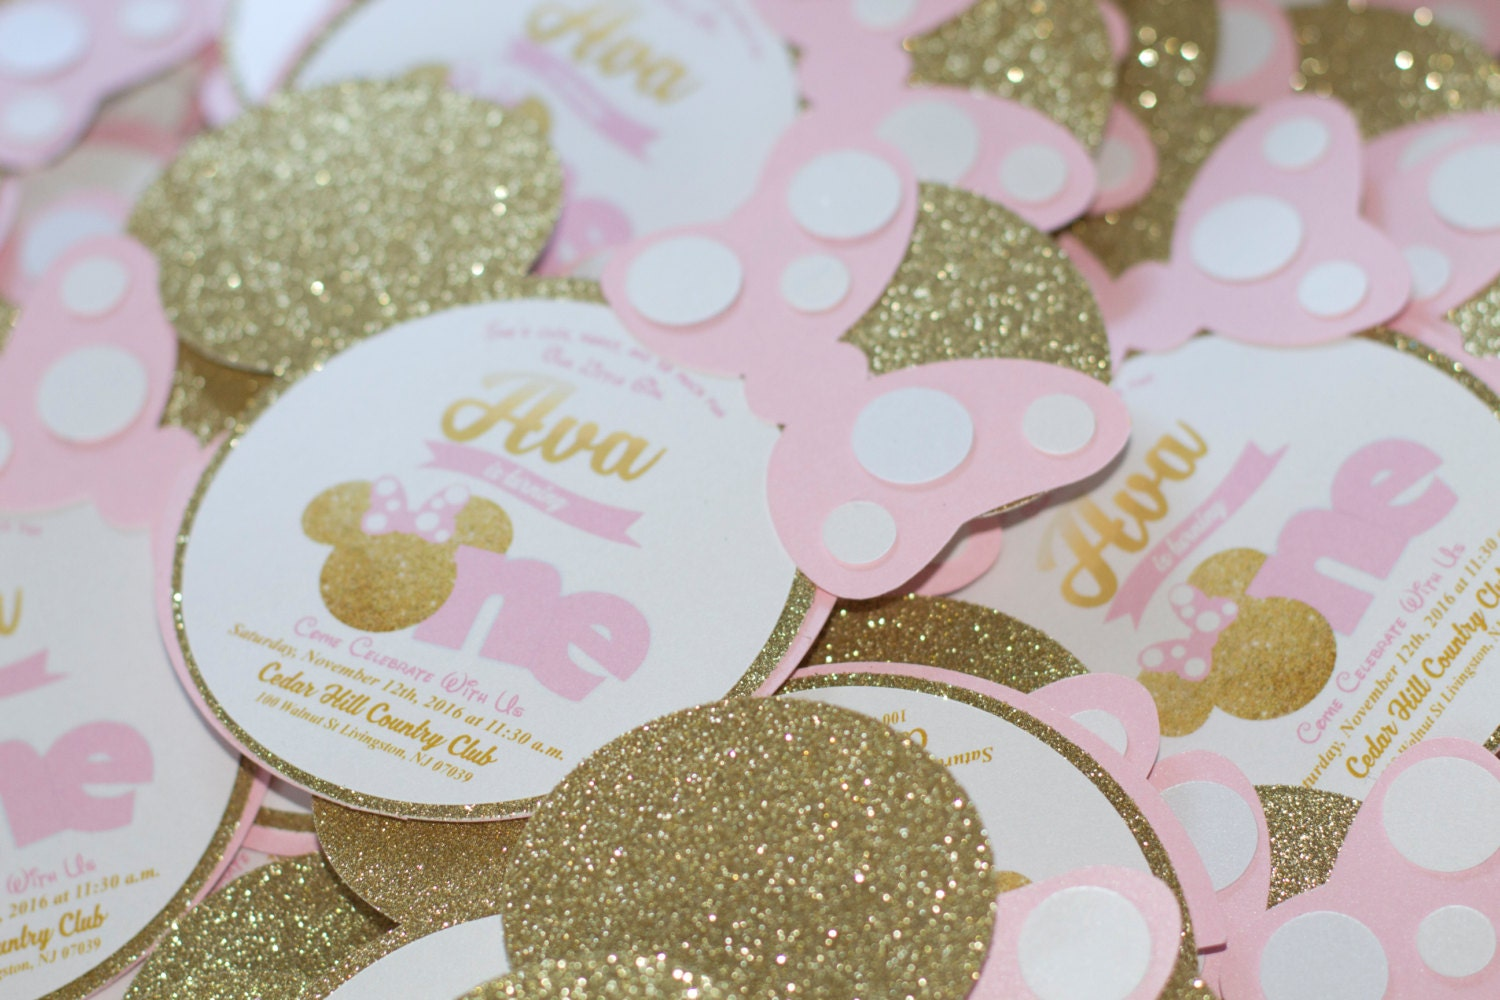 Minnie Mouse Invitations Etsy with luxury invitation layout